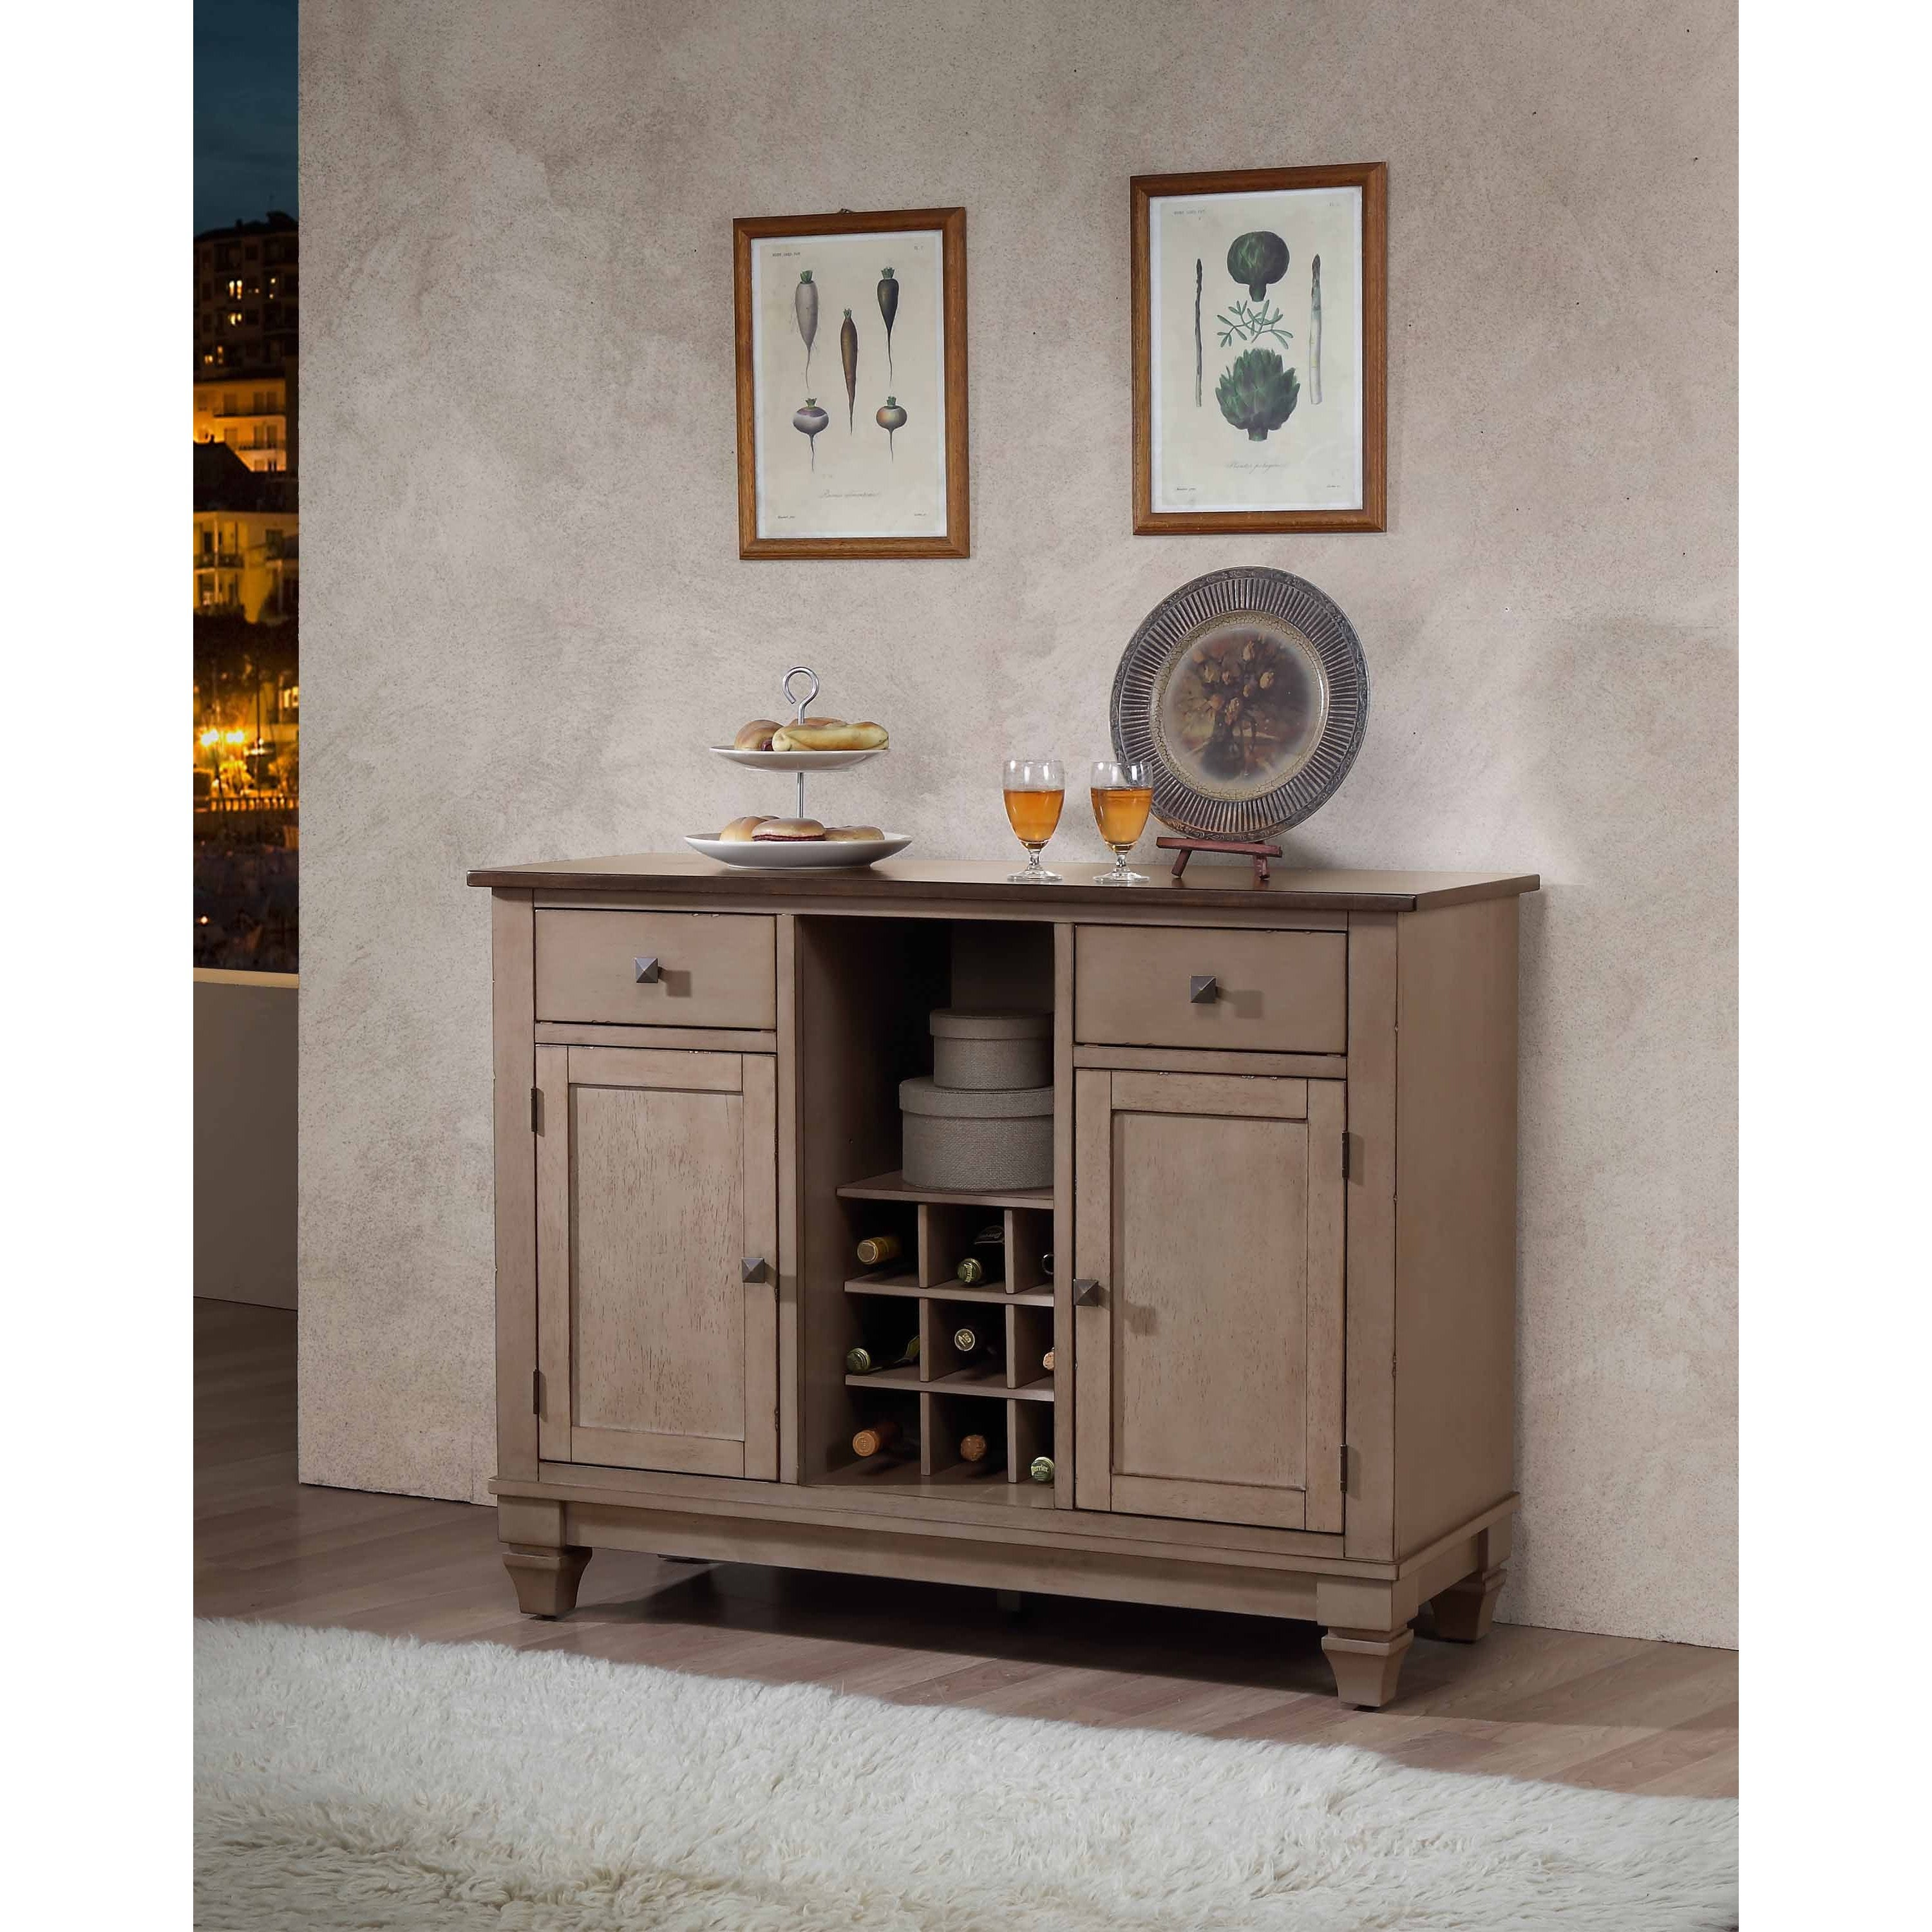 K And B Furniture Co Inc Brown Wood Wine Rack Sideboard Buffet Server Storage Cabinet With Drawers Shelf Doors Free Shipping Today